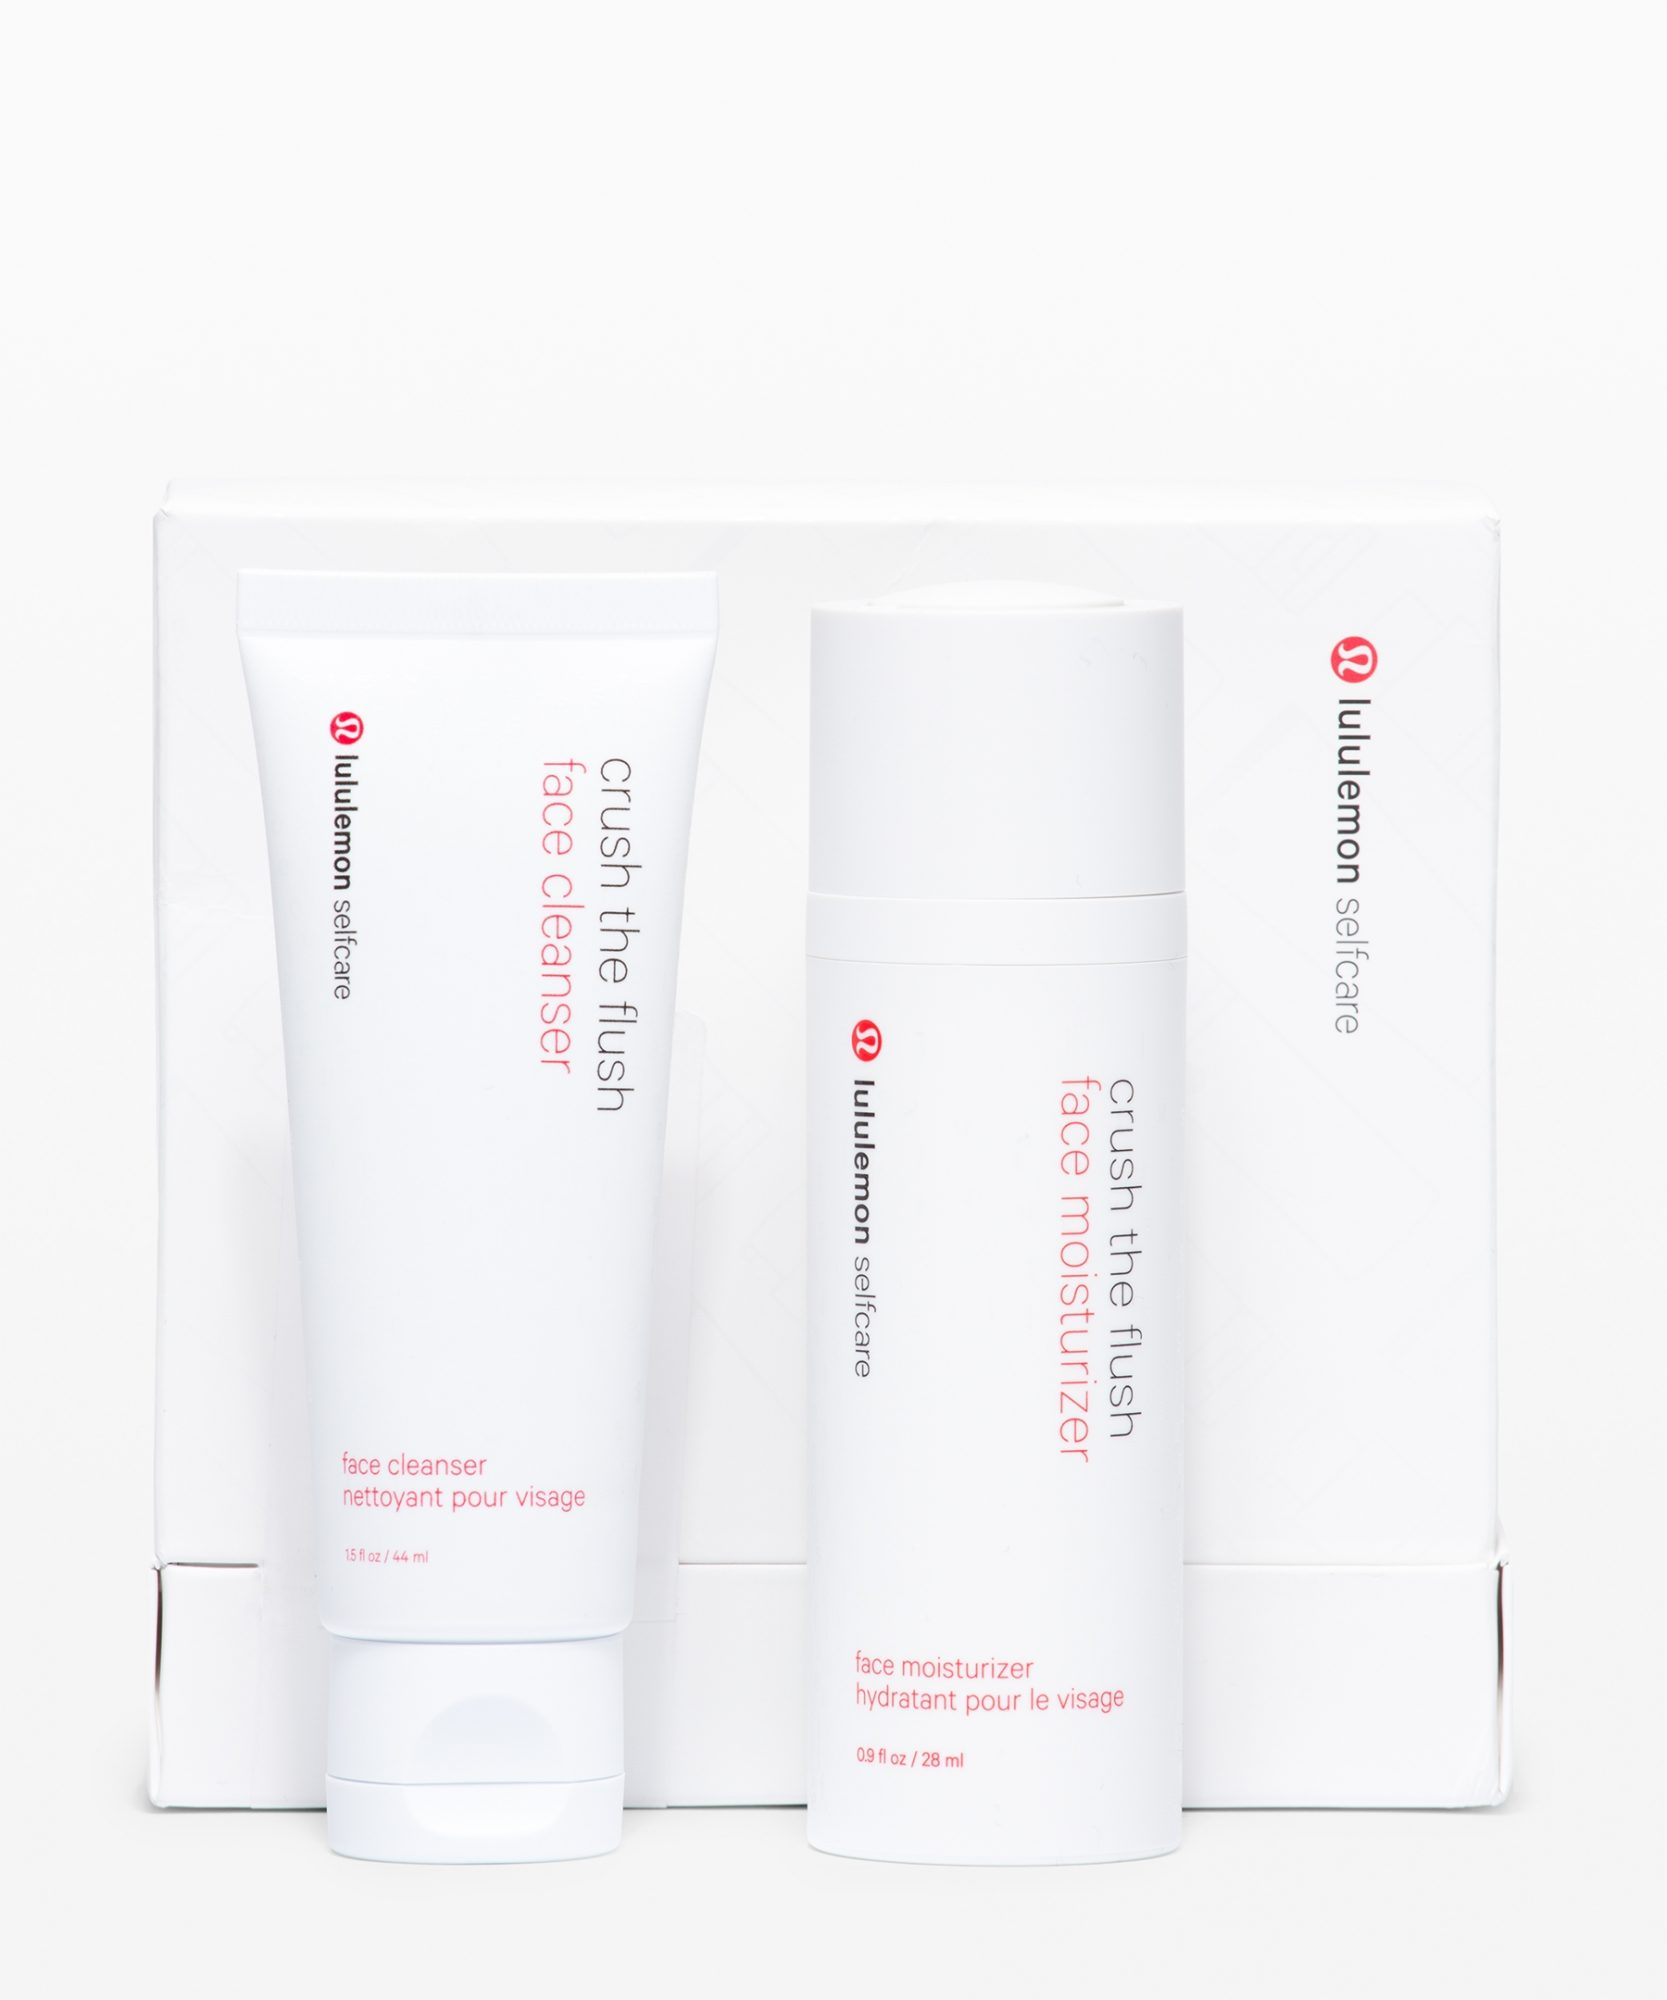 Lululemon has launched a set made for those who have a flushed face after hot, sweaty workouts (hello). The travel-size cleanser and moisturizer make a complete cooling, cleansing, and hydrating team that will reduce facial redness.